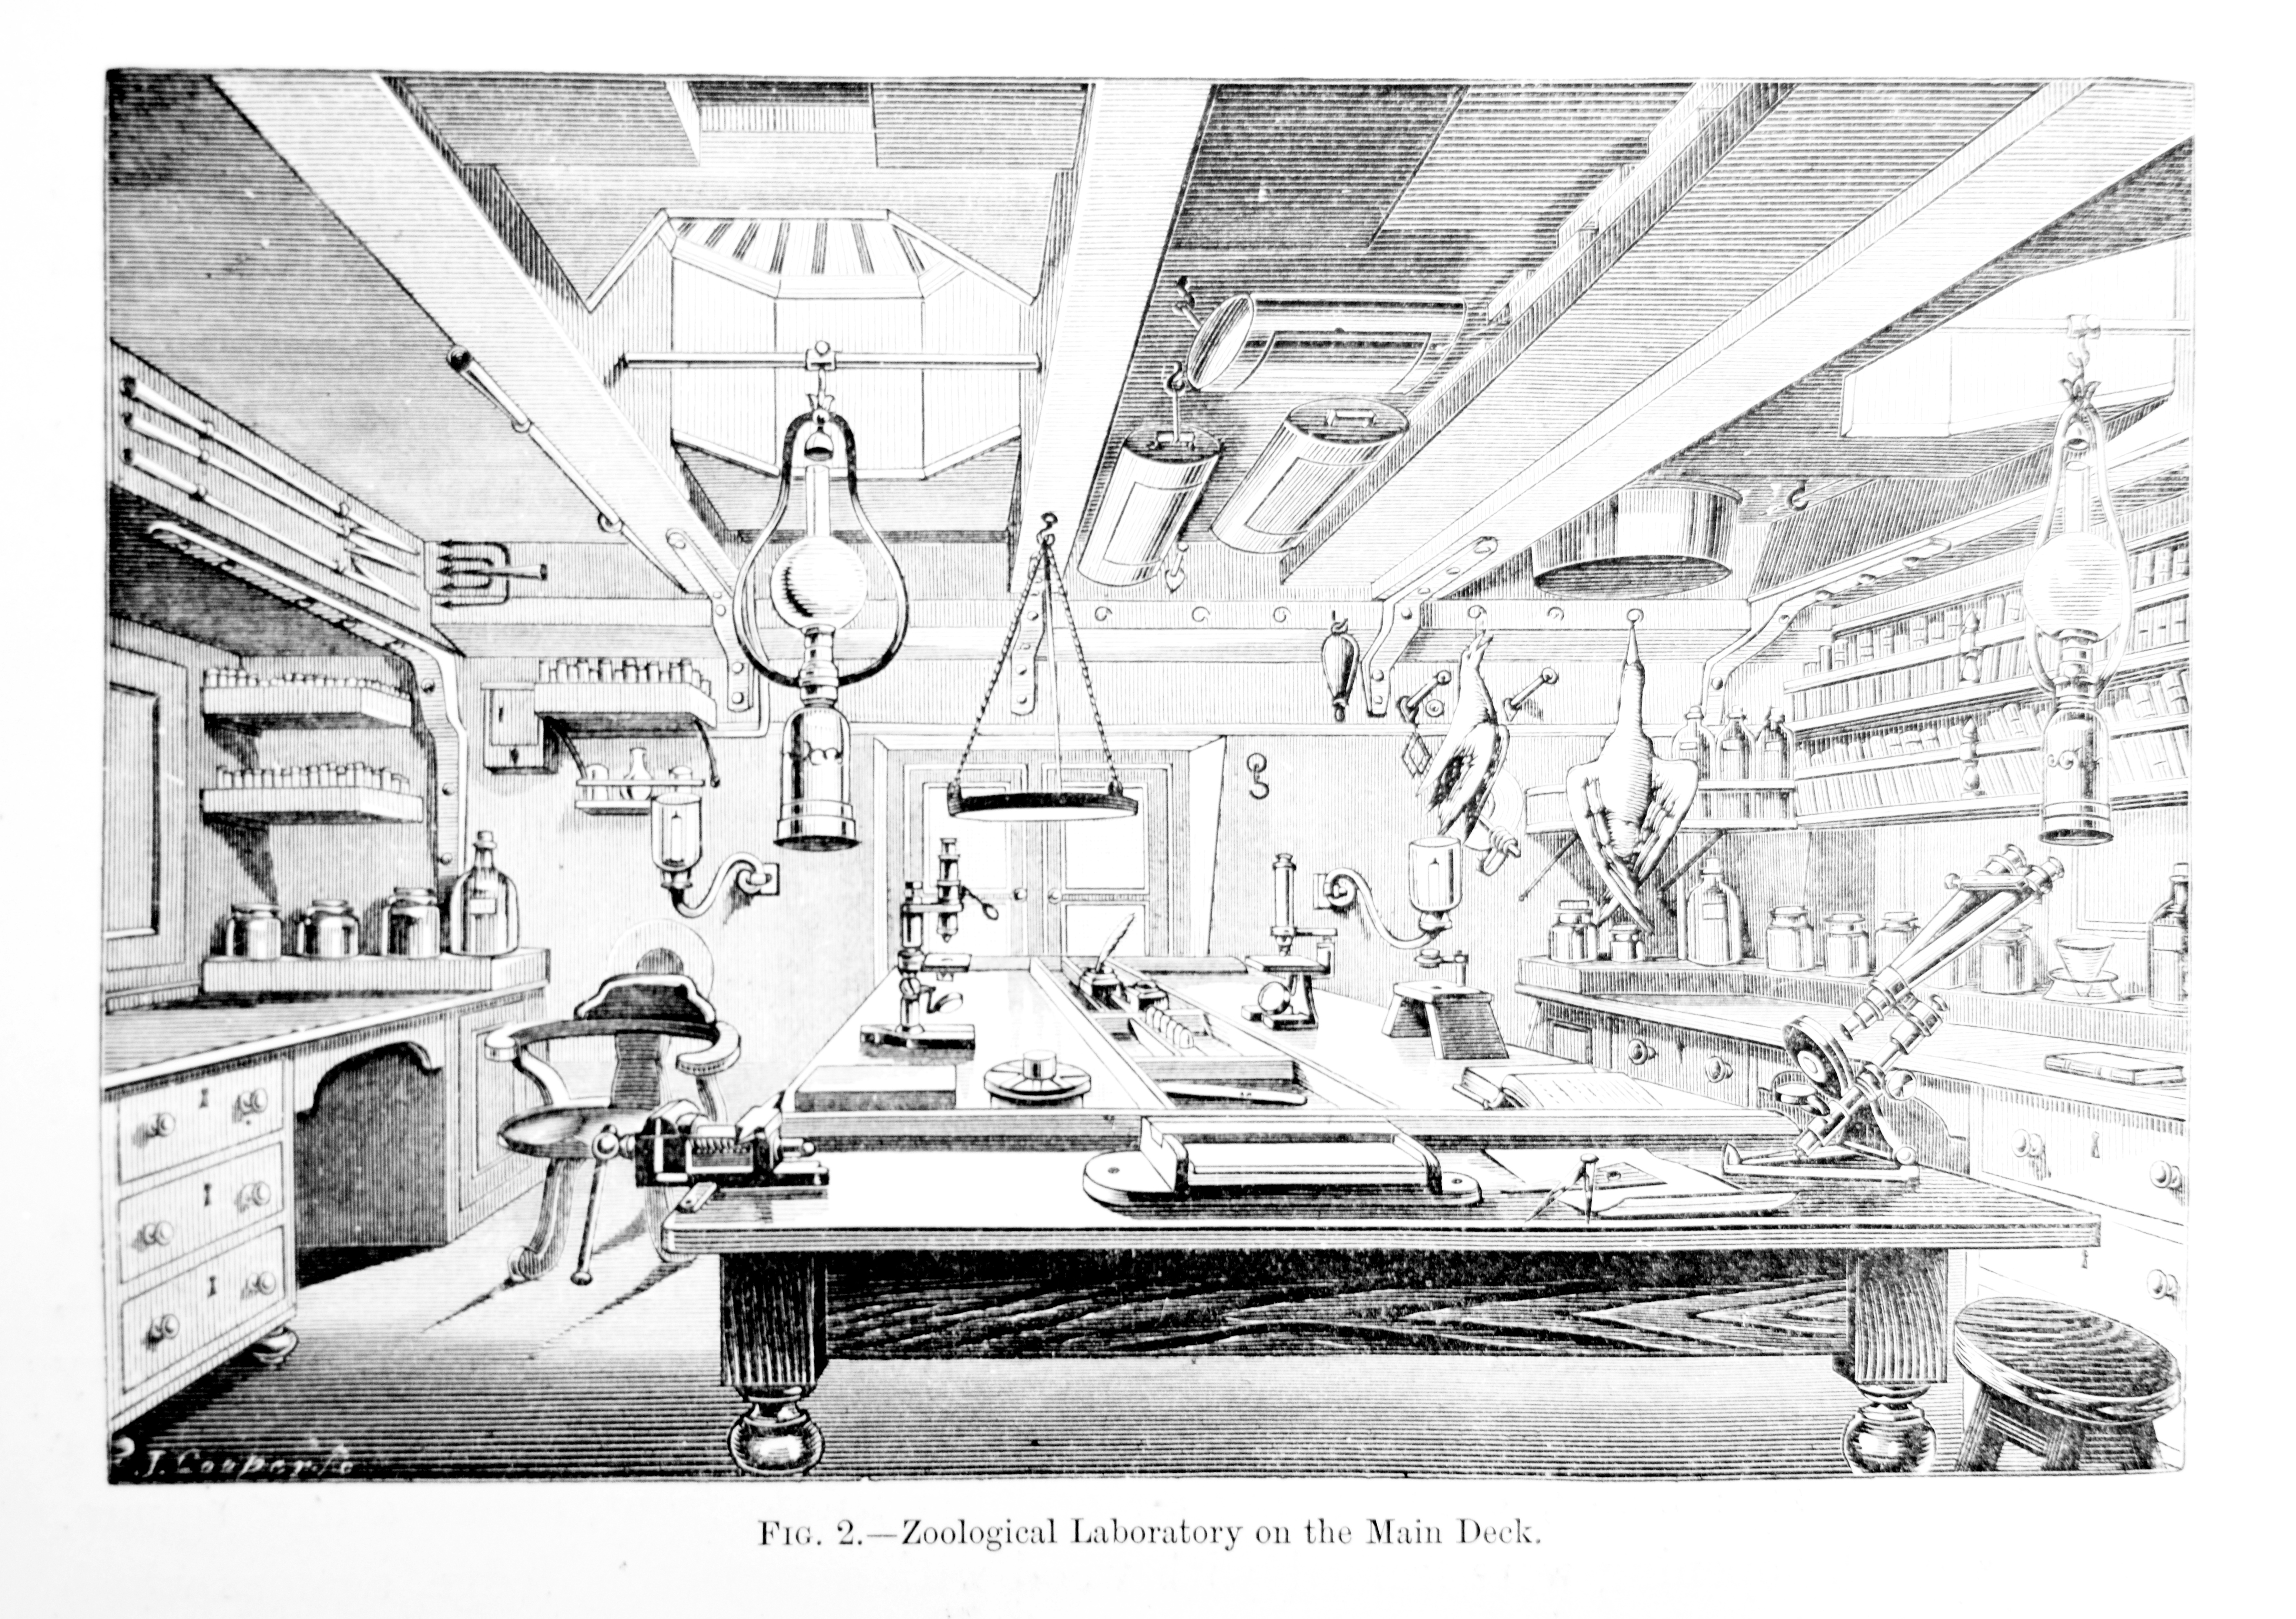 In the Natural History Laboratory, specimens could be examined and preserved with the use of scientific equipment. Note the microscope.